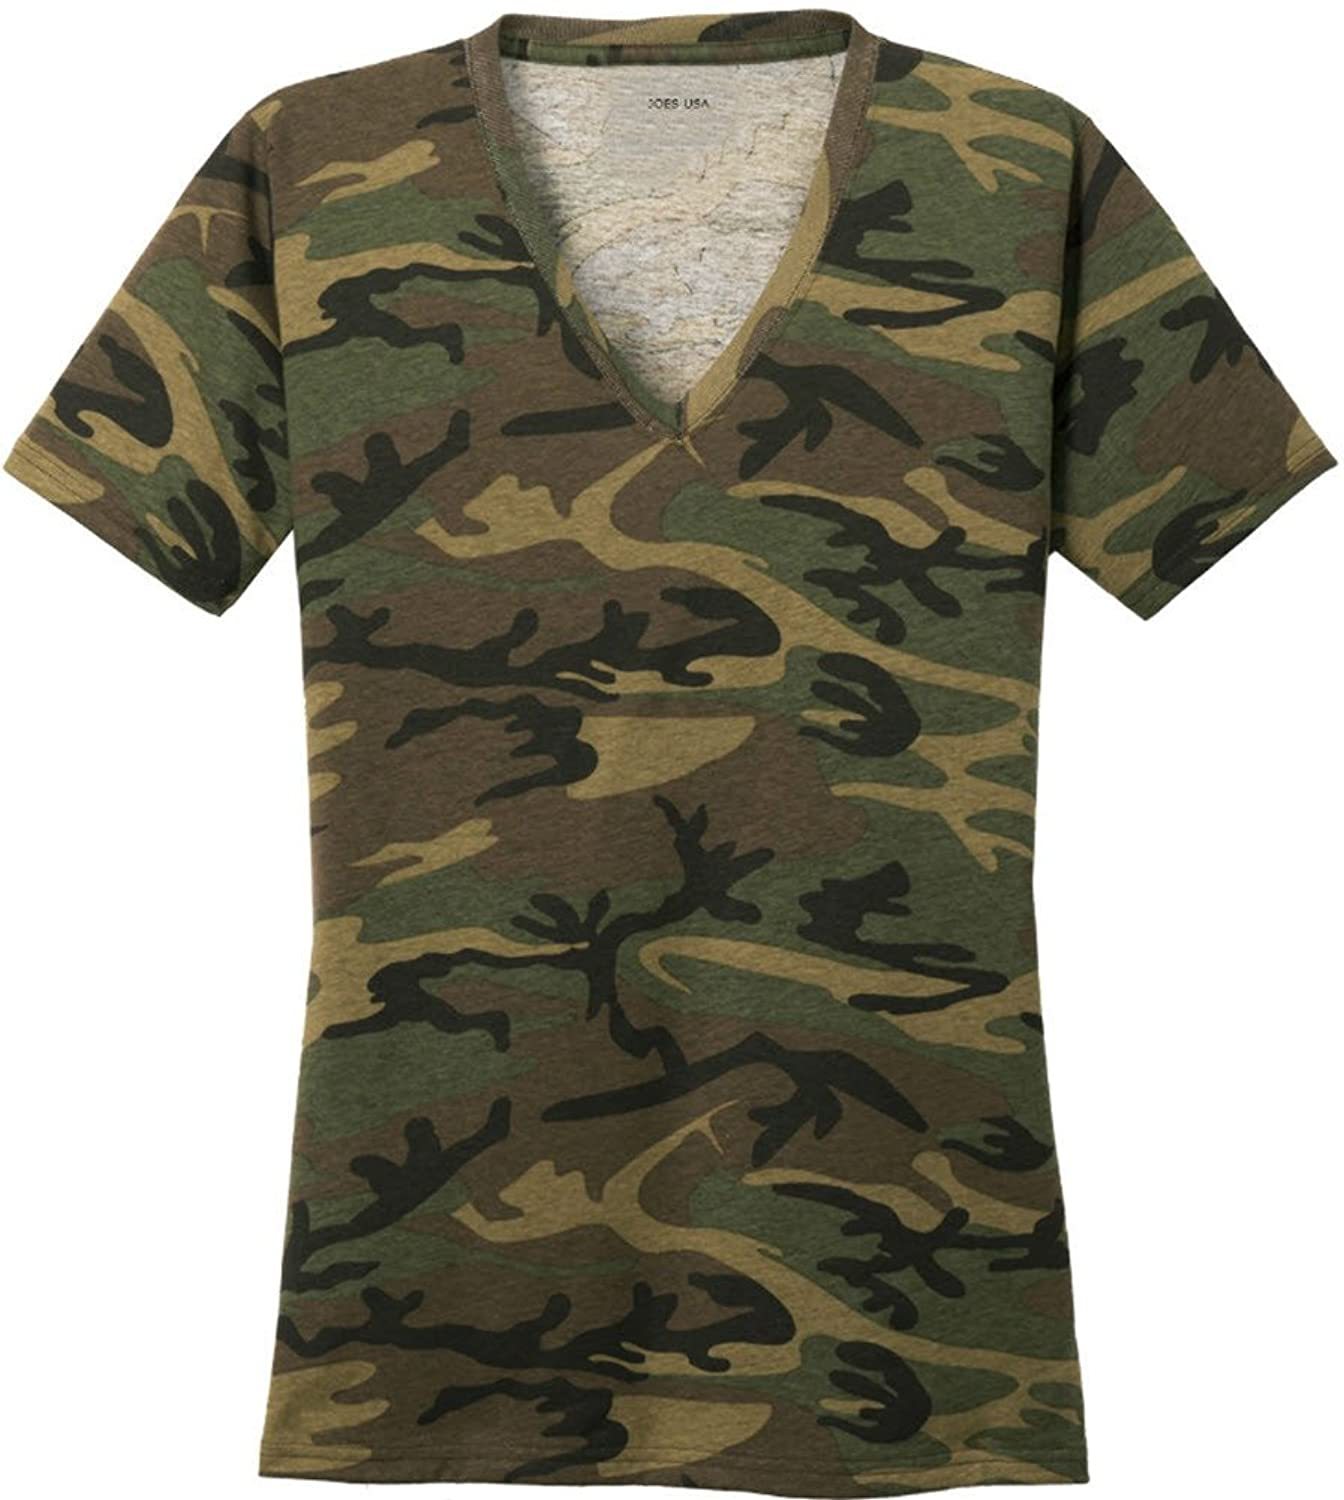 0b7b5426f12de Joe\'s USA(tm) Ladies Camo V-Neck Tees V-Neck T-Shirt. Colorfully cool, Why  hide? Stand out in this fashionable camo tee. Printed with Joe\'s USA(tm)  Logo ...